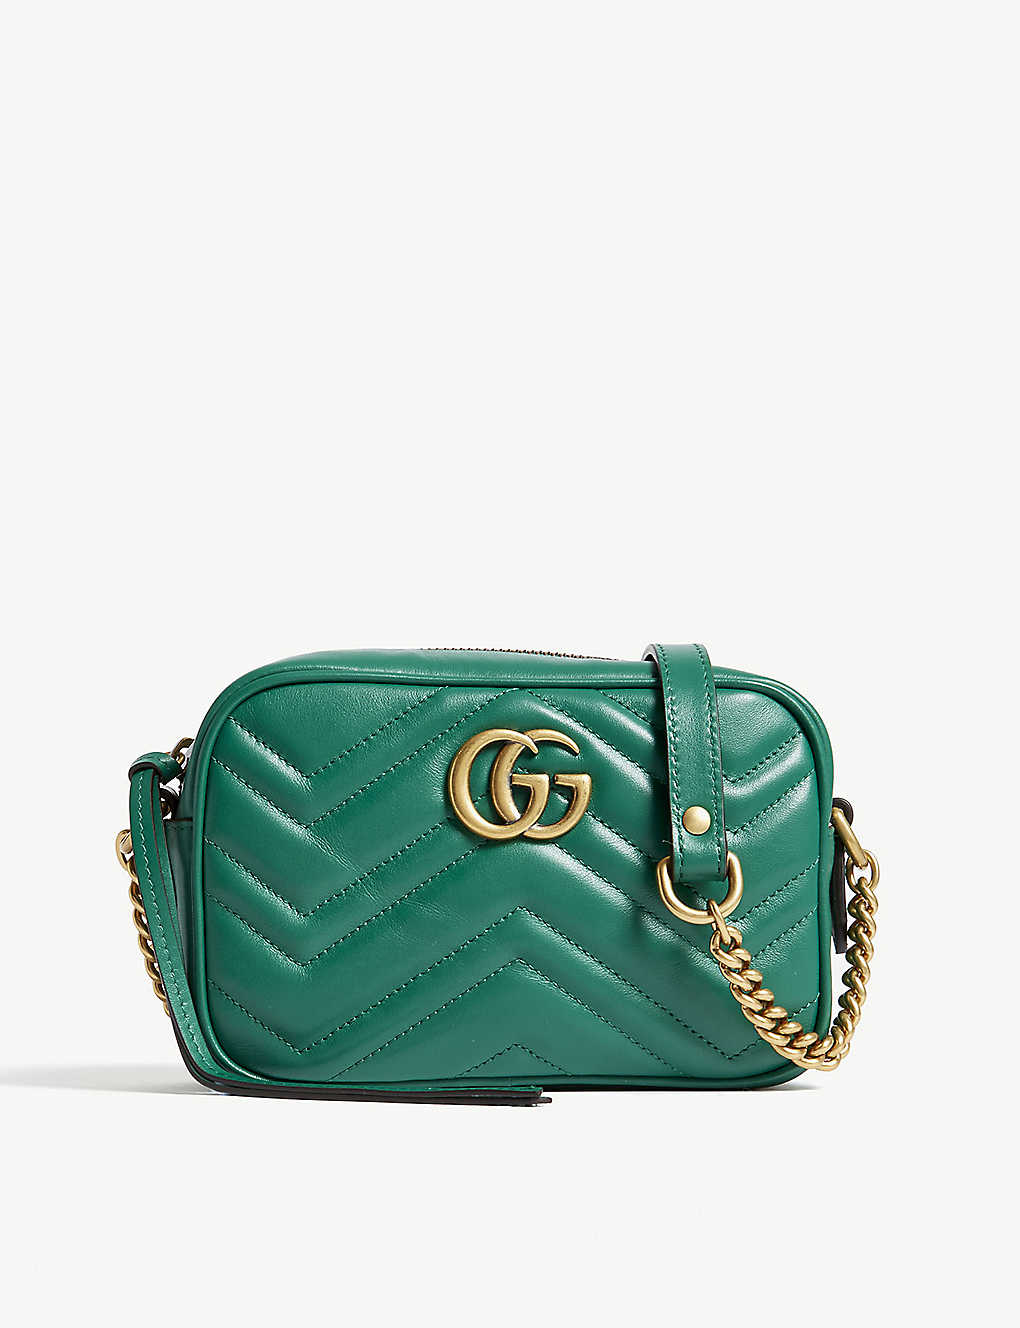 dadedeb2d30c GUCCI - GG Marmont mini leather camera cross-body bag | Selfridges.com